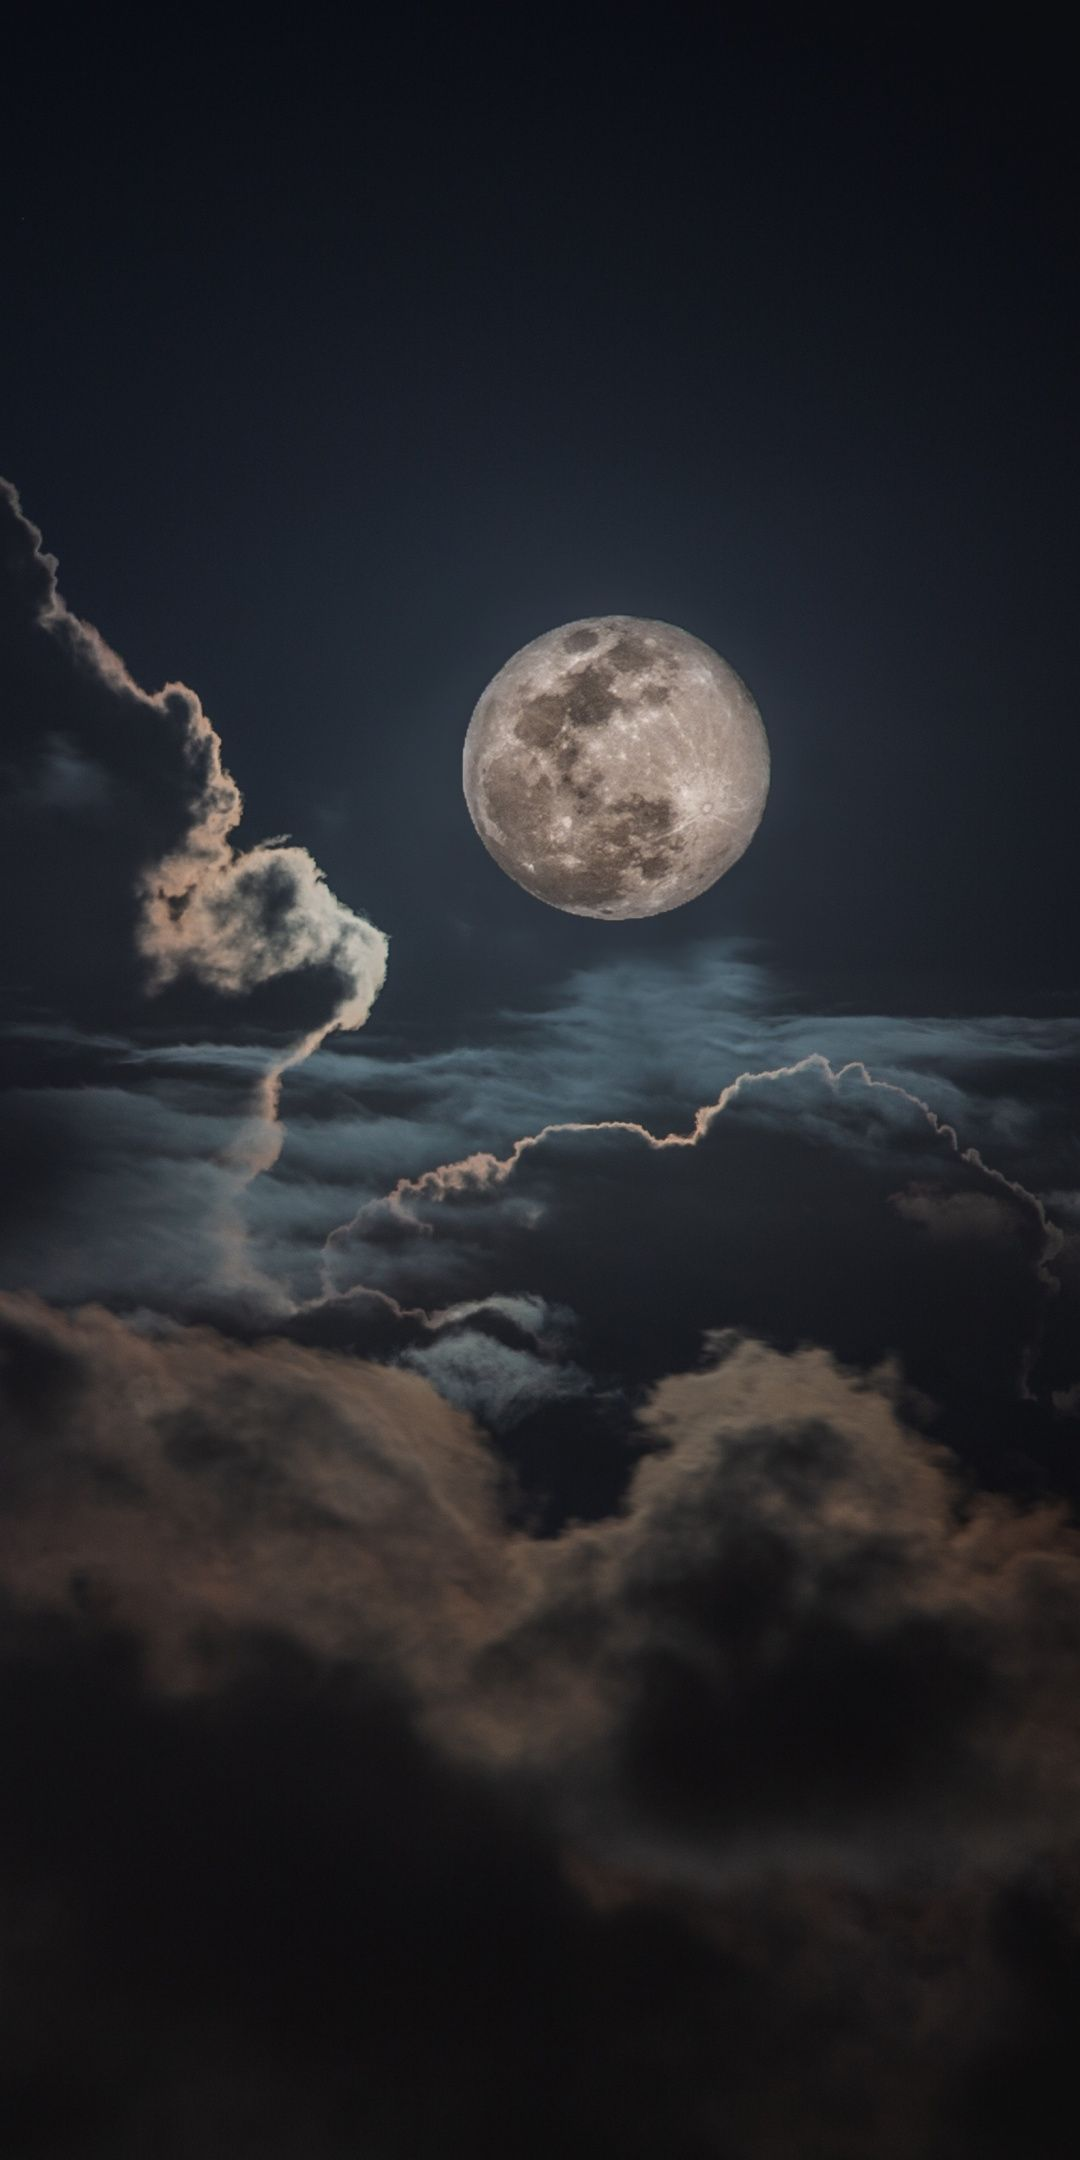 Night Clouds And Moon Sky Wallpaper Night Sky Wallpaper Dark Wallpaper Iphone Sky Aesthetic